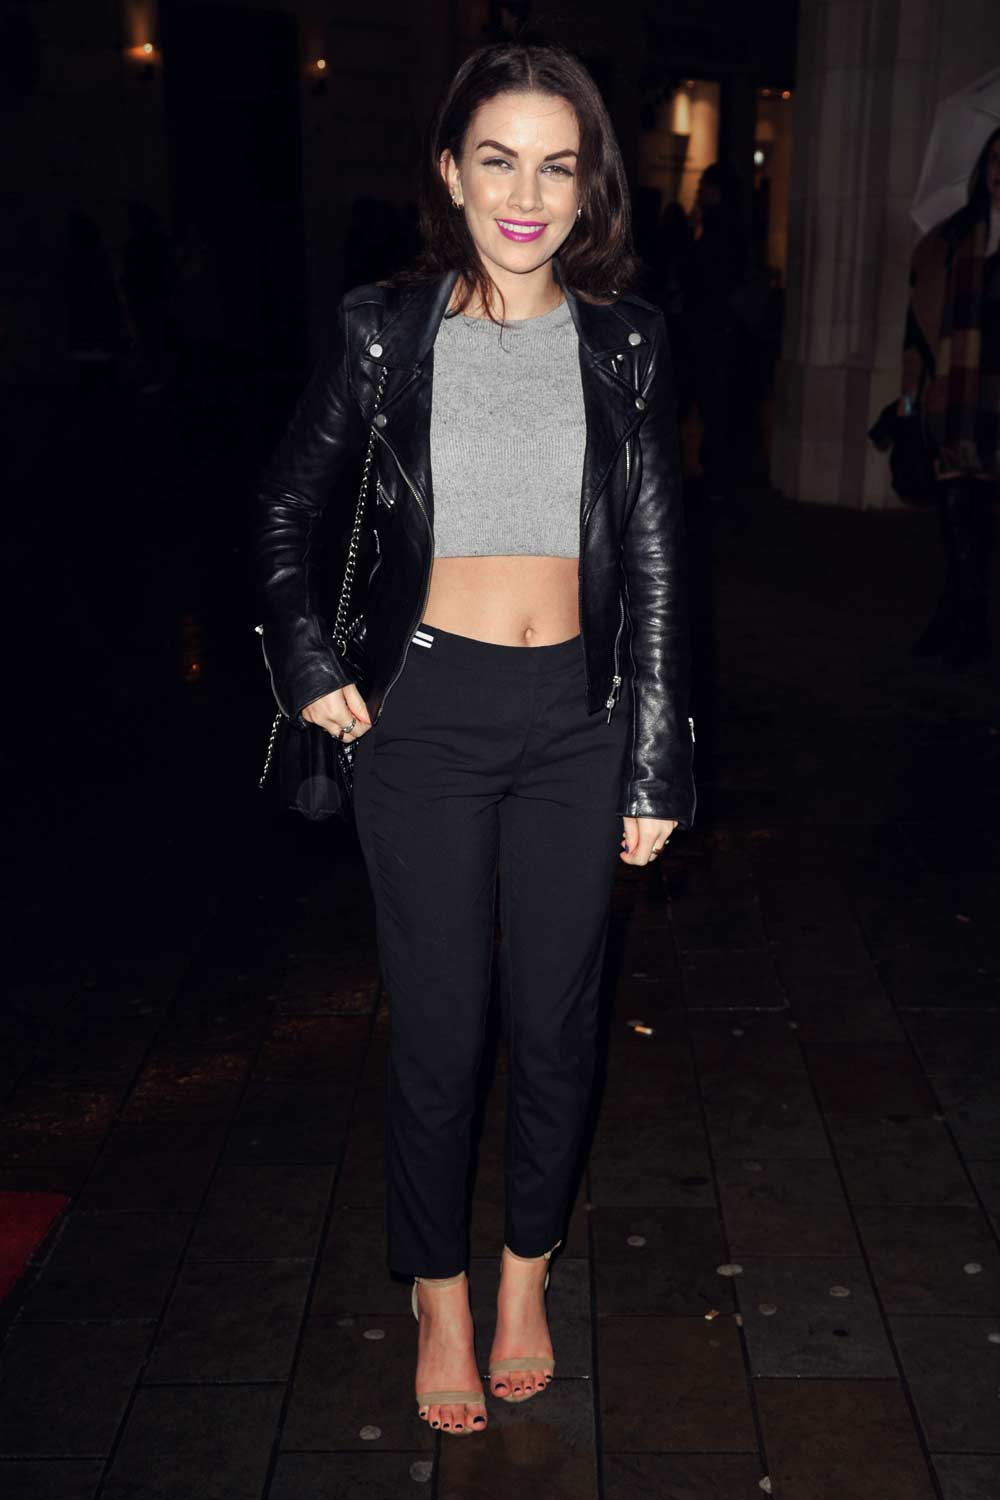 Stacey Mcclean Attends Jake Quickendens Ep Launch Party